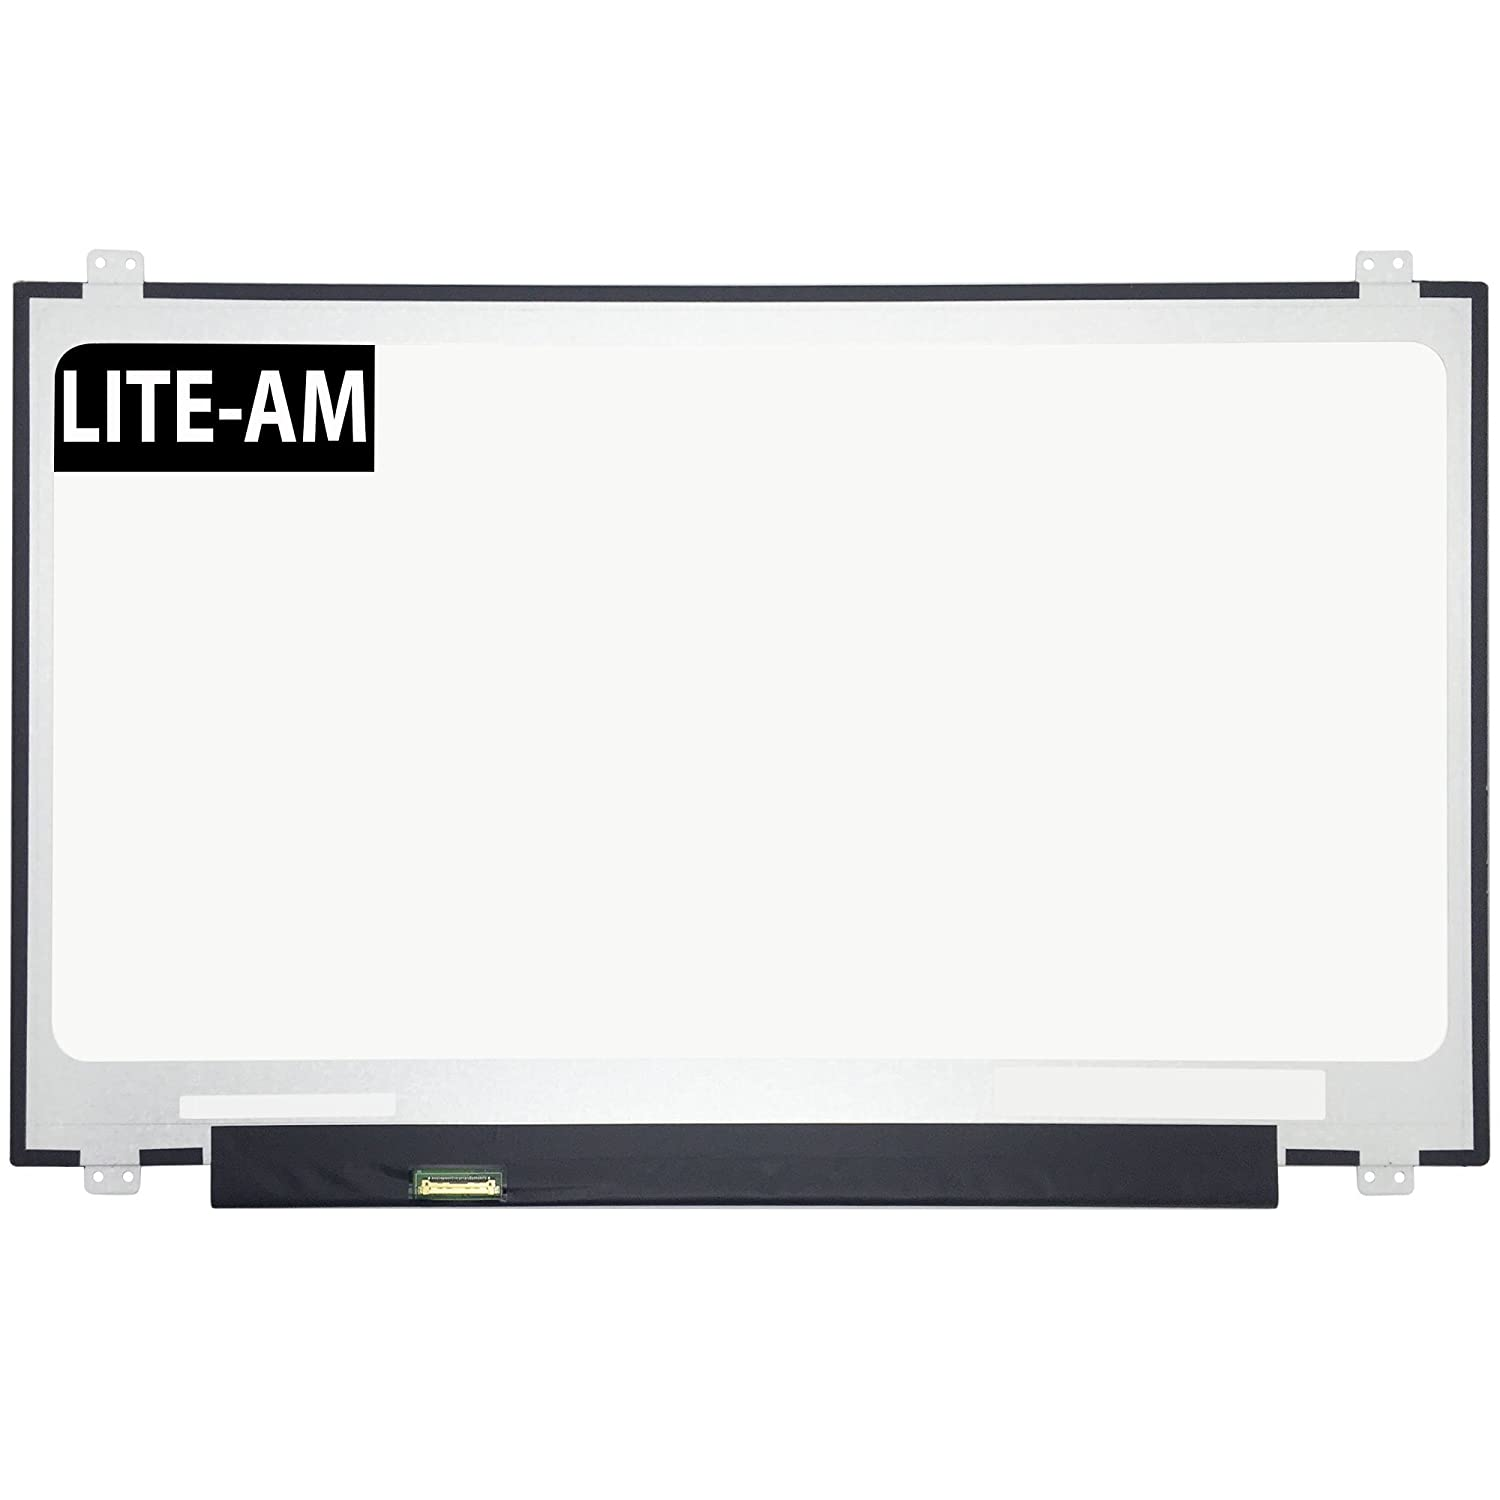 Lite-am ® Ersatz 43, 9 cm Laptop LED LCD Bildschirm EDV HD + Display IBM Lenovo IdeaPad 110 43, 2 cm B71–80 Typ 80rj n173fga-e34 N173fga-e44 b173rtn02.1 b173rtn02.2